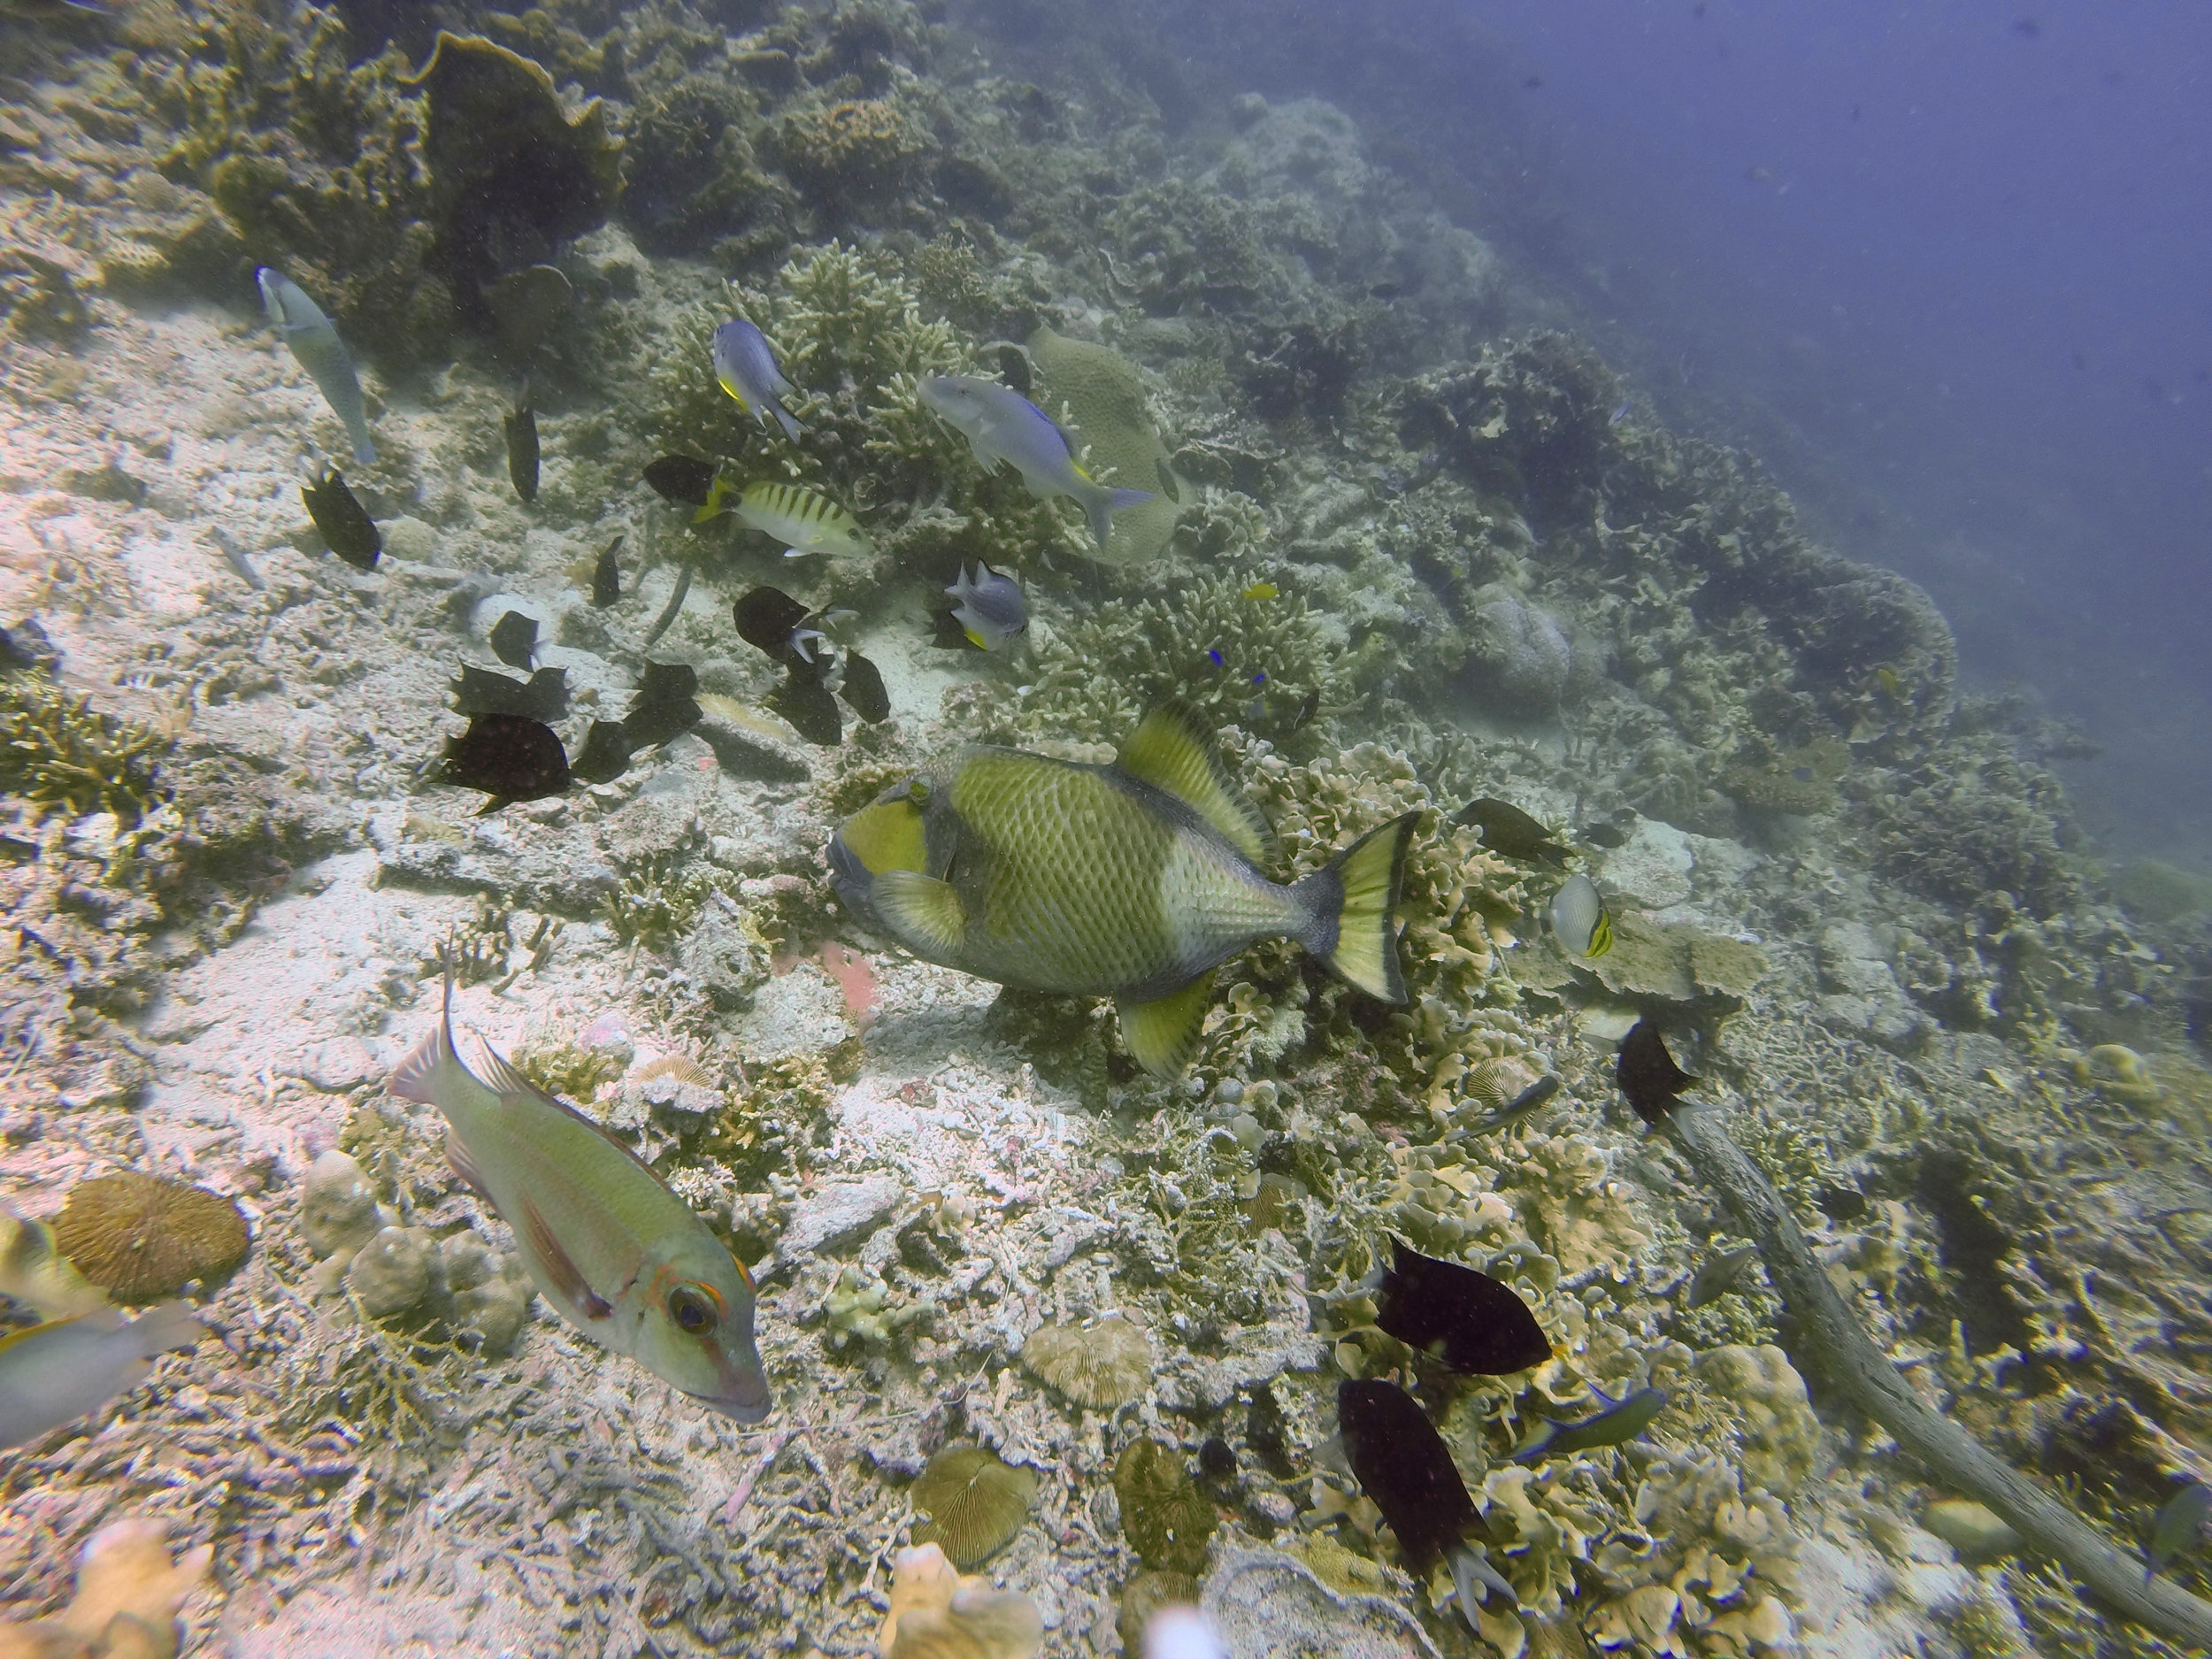 (2/2019, Santa Barbara) Titan triggerfish paper submitted to Marine Biodiversity! Fingers crossed for a timely and fair review. Email me for a sneak-peak.